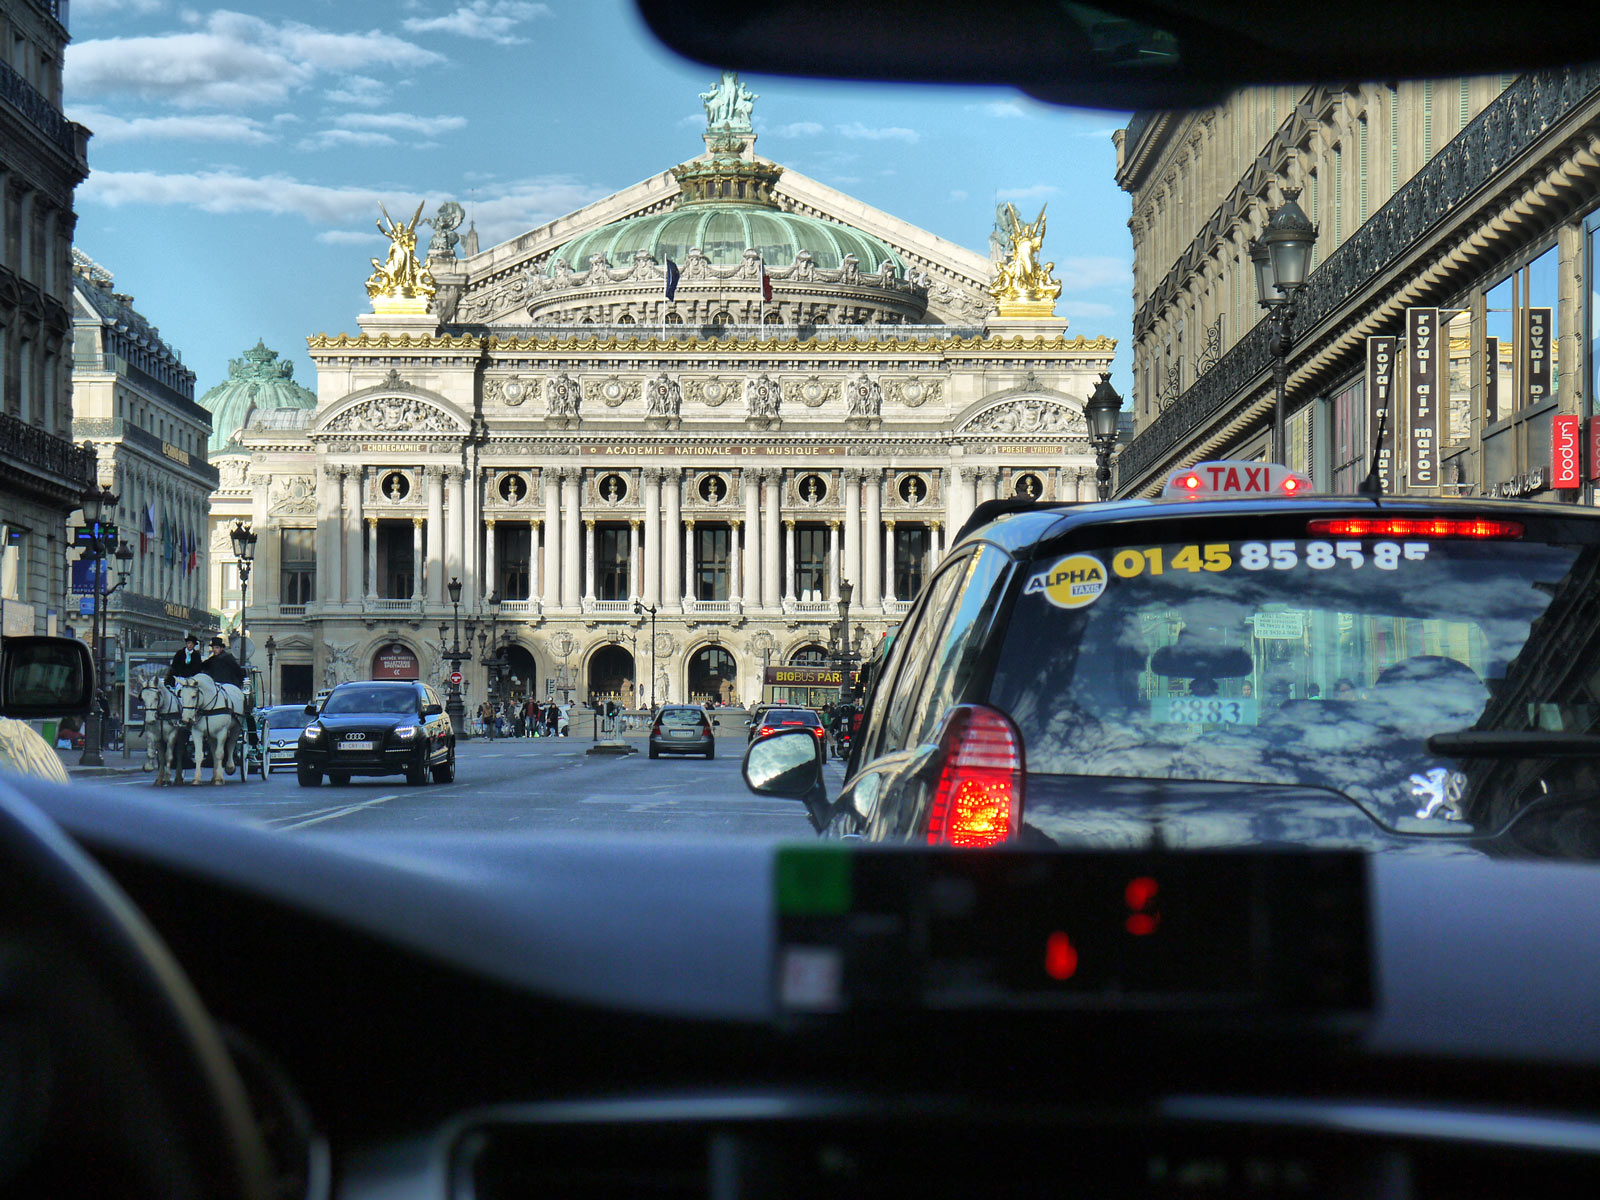 Taking a Taxi Ride Through Paris - Paris, France